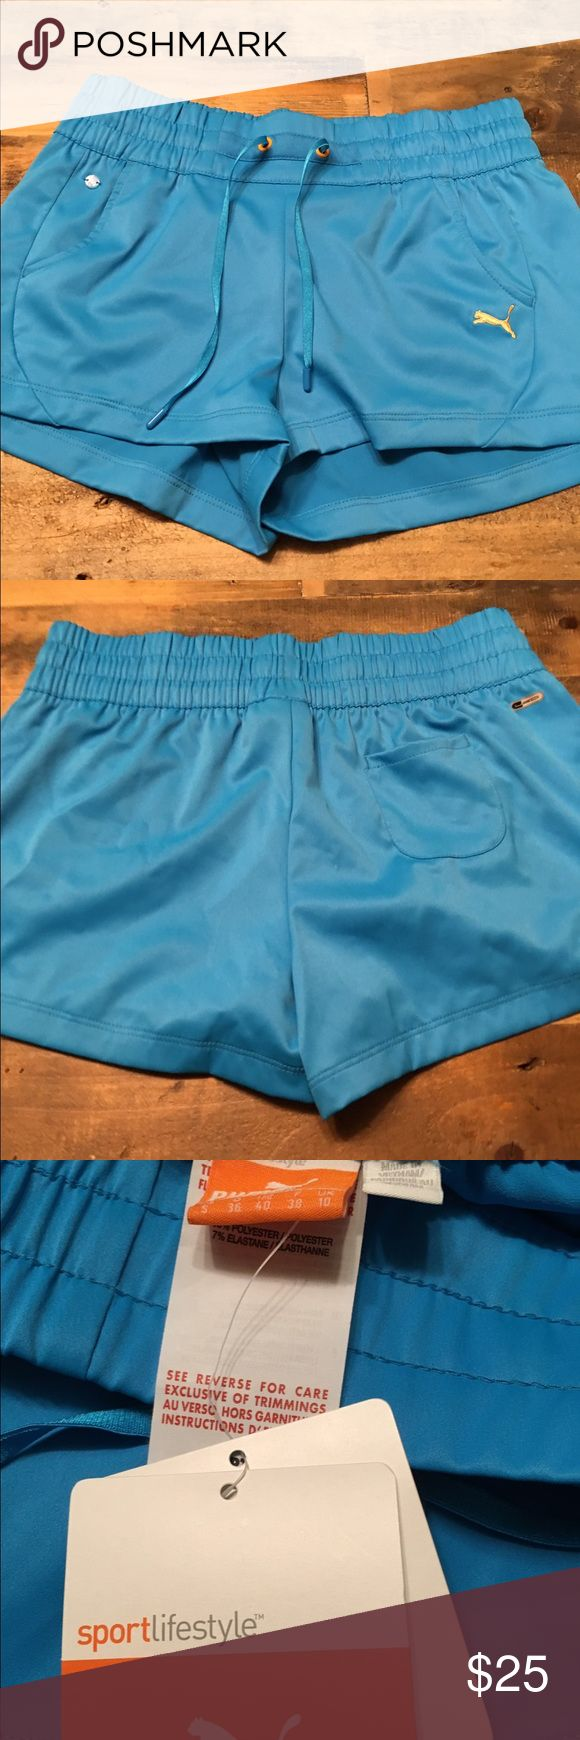 Brand new with tags adorable puma shorts Never worn. Tags on. Pretty blue Puma shorts Puma Shorts